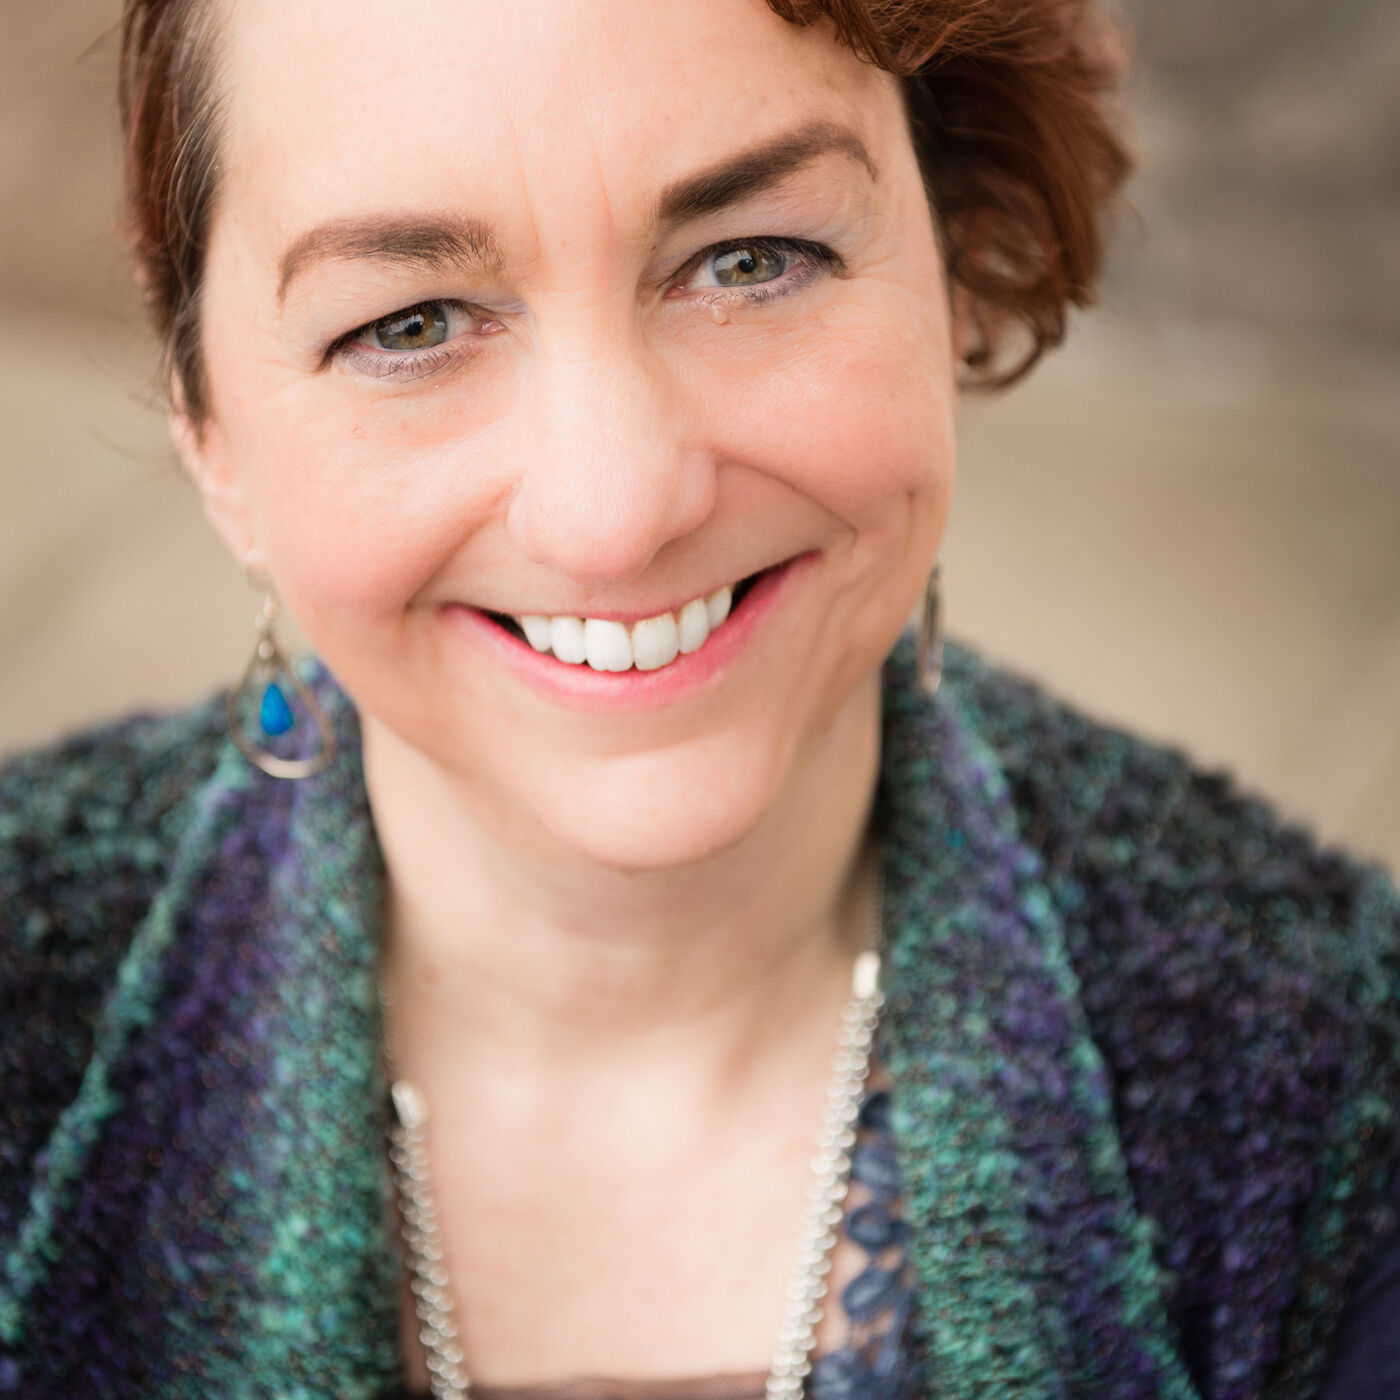 Episode 19 - Finding What Makes You Come Alive with Guest Marie Gettel-Gilmartin